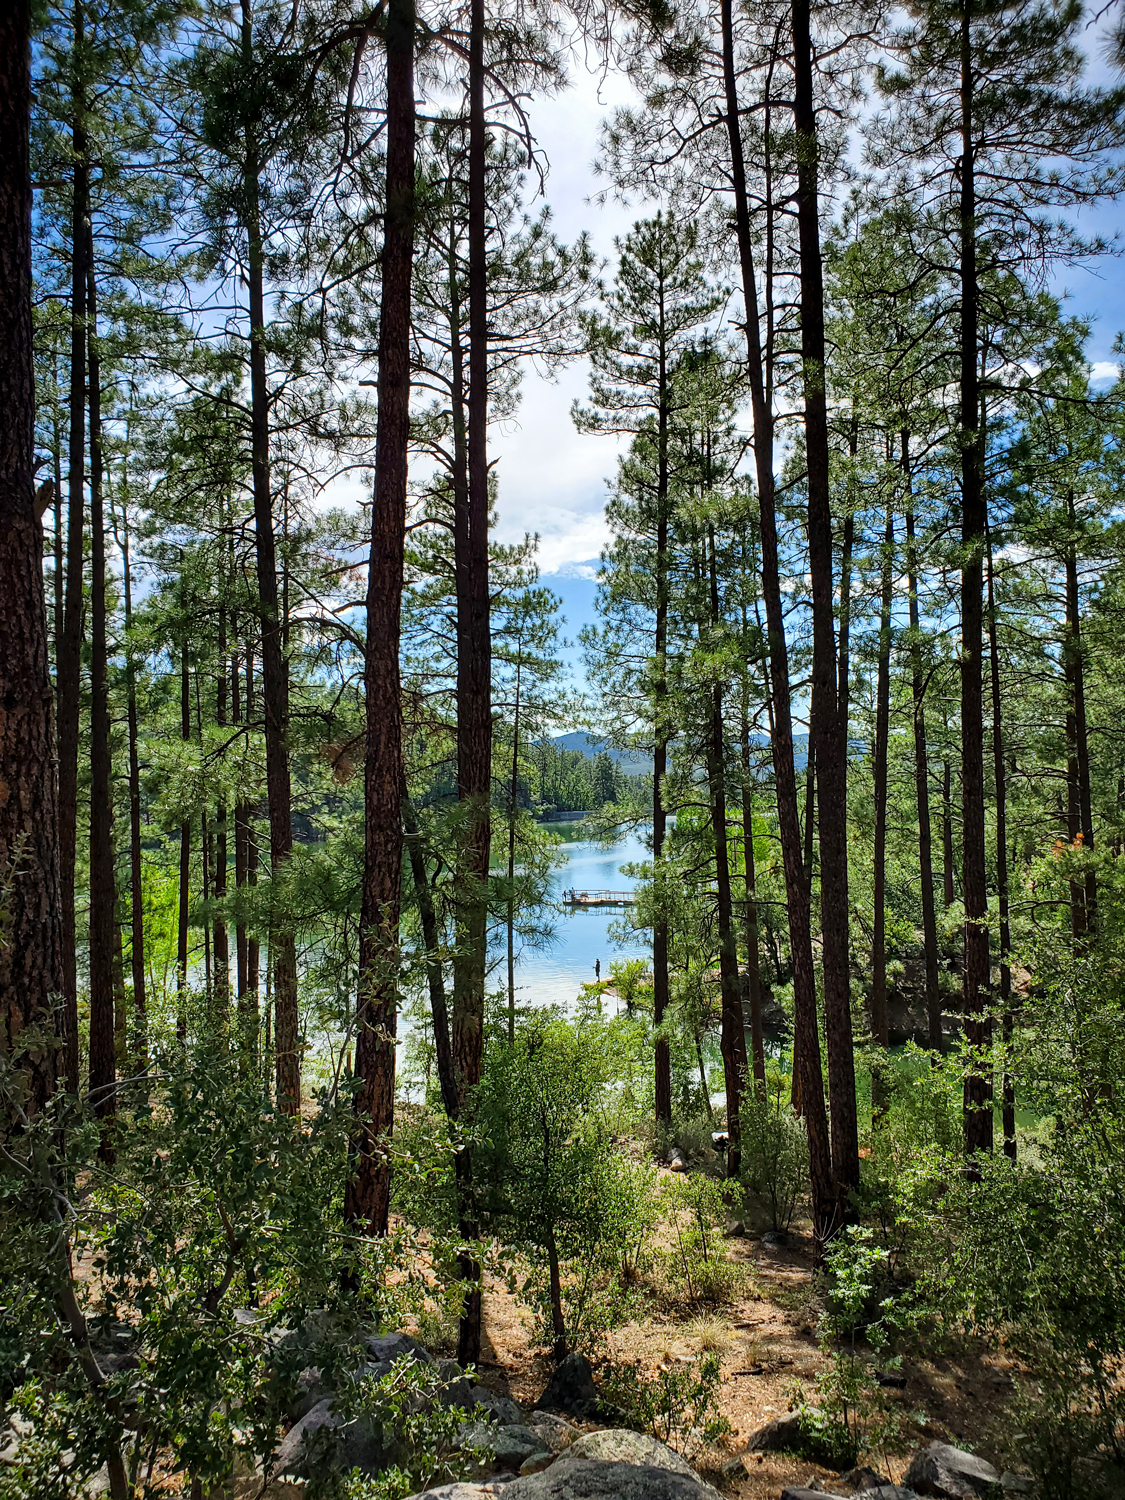 A lovely pine forest in Arizona, overlooking a lake